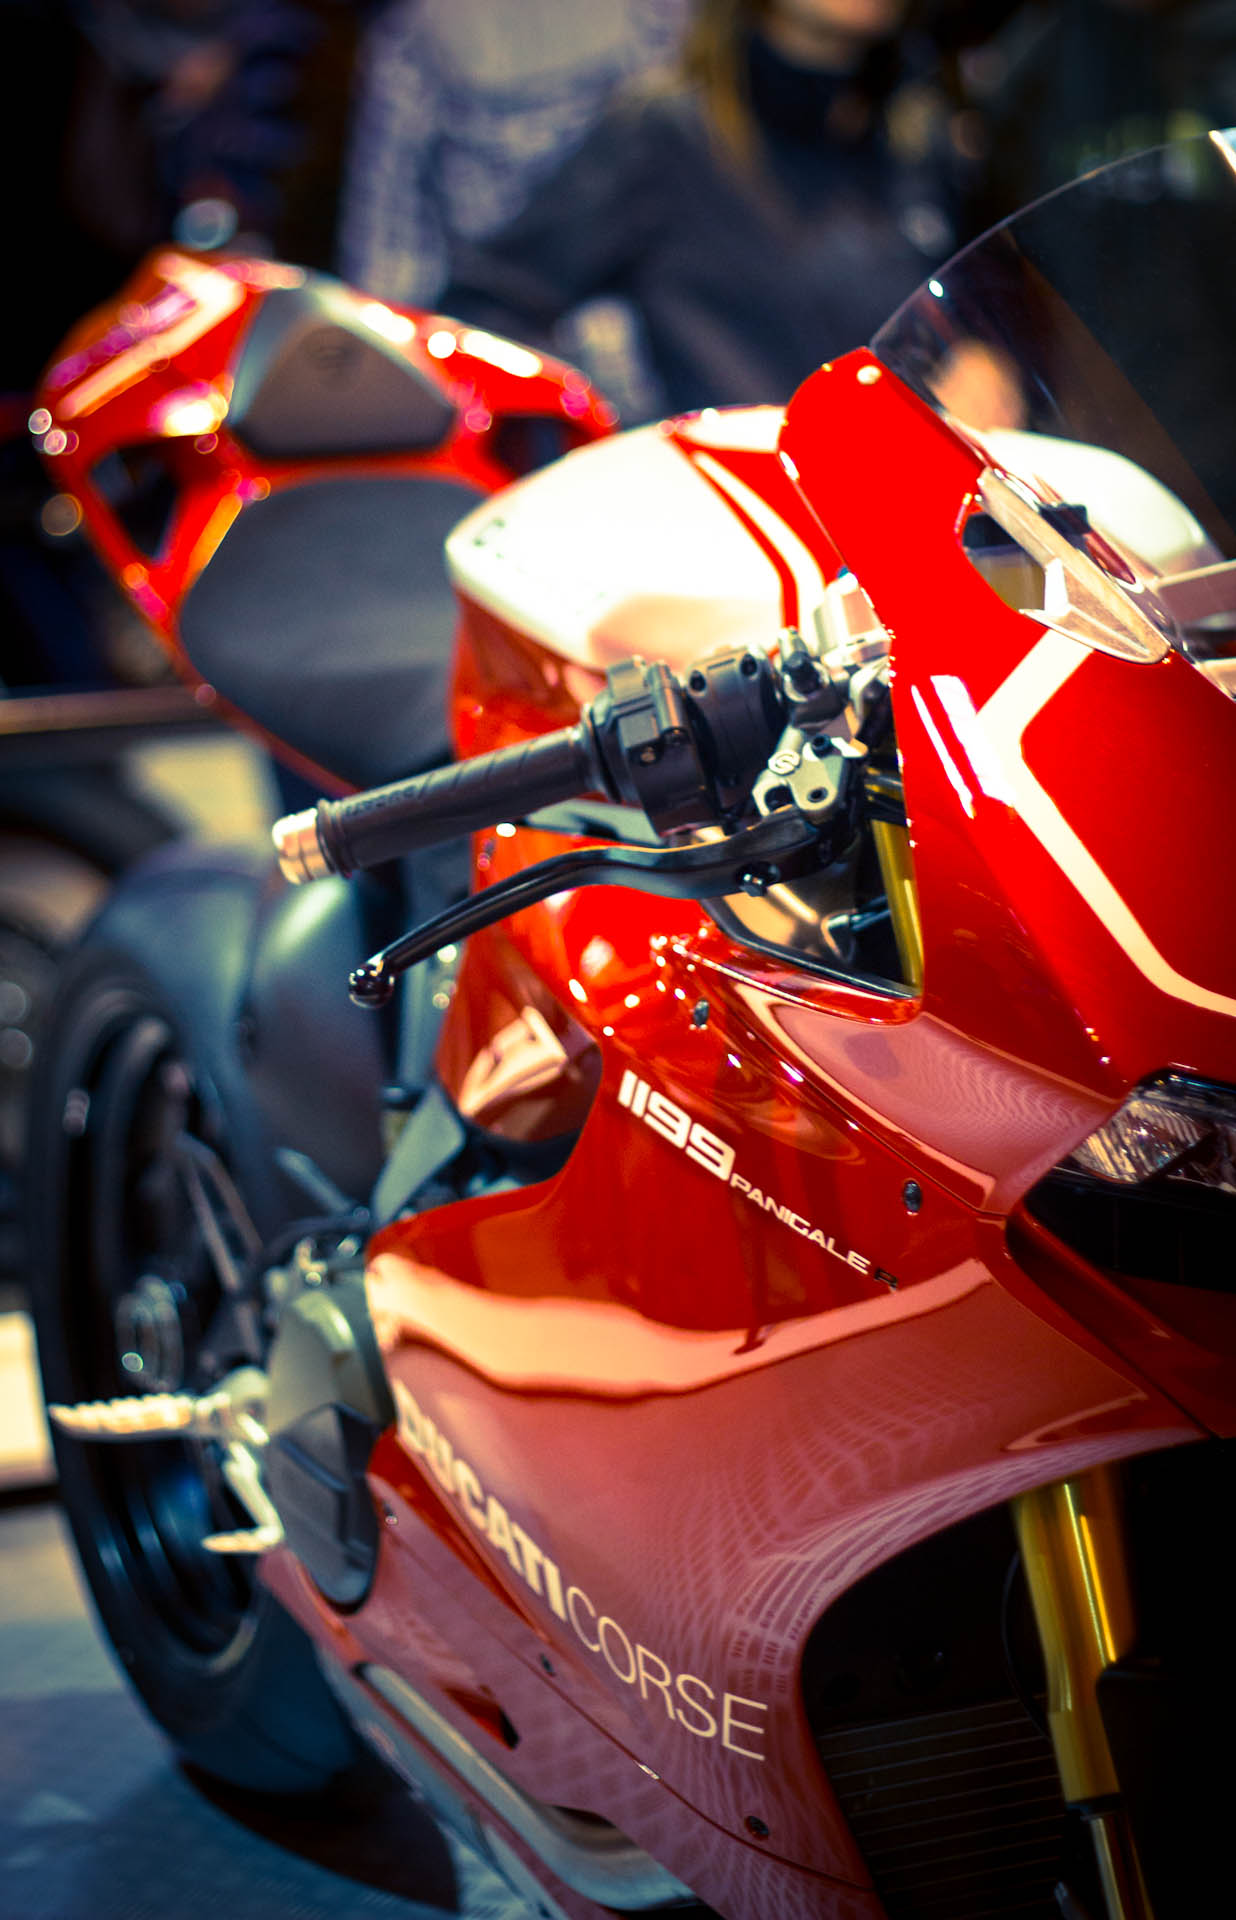 Ducati Panigale 1199 R By Bowley Chris